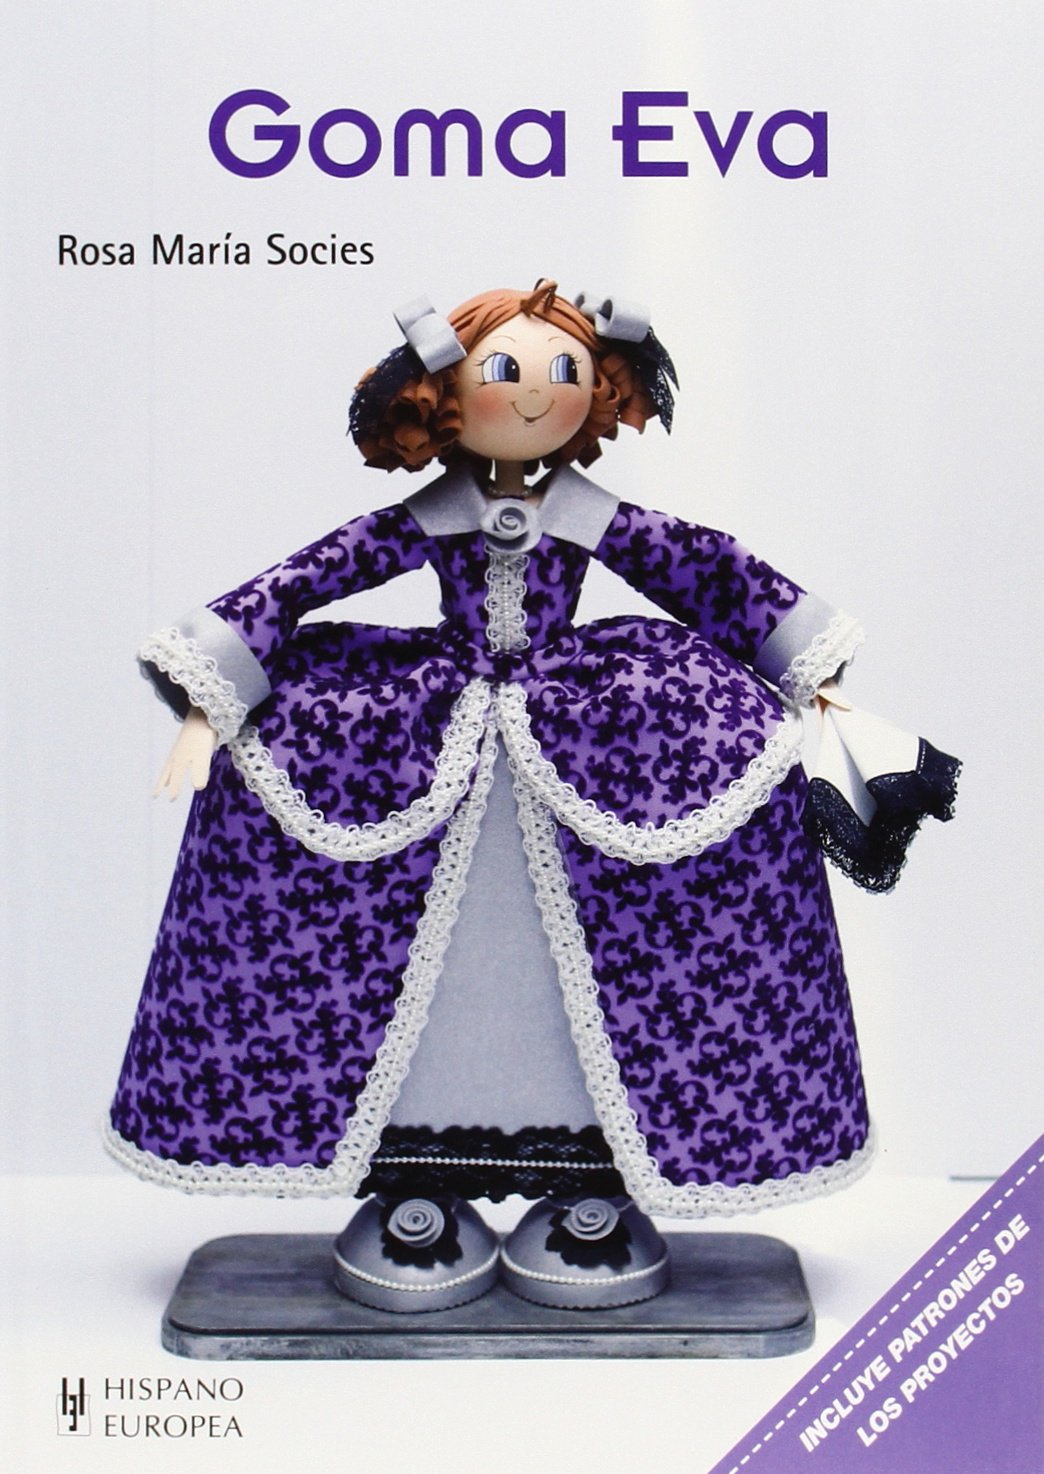 Goma eva (Manualidades (hispano Europea)): Amazon.es: Rosa María Socies: Libros